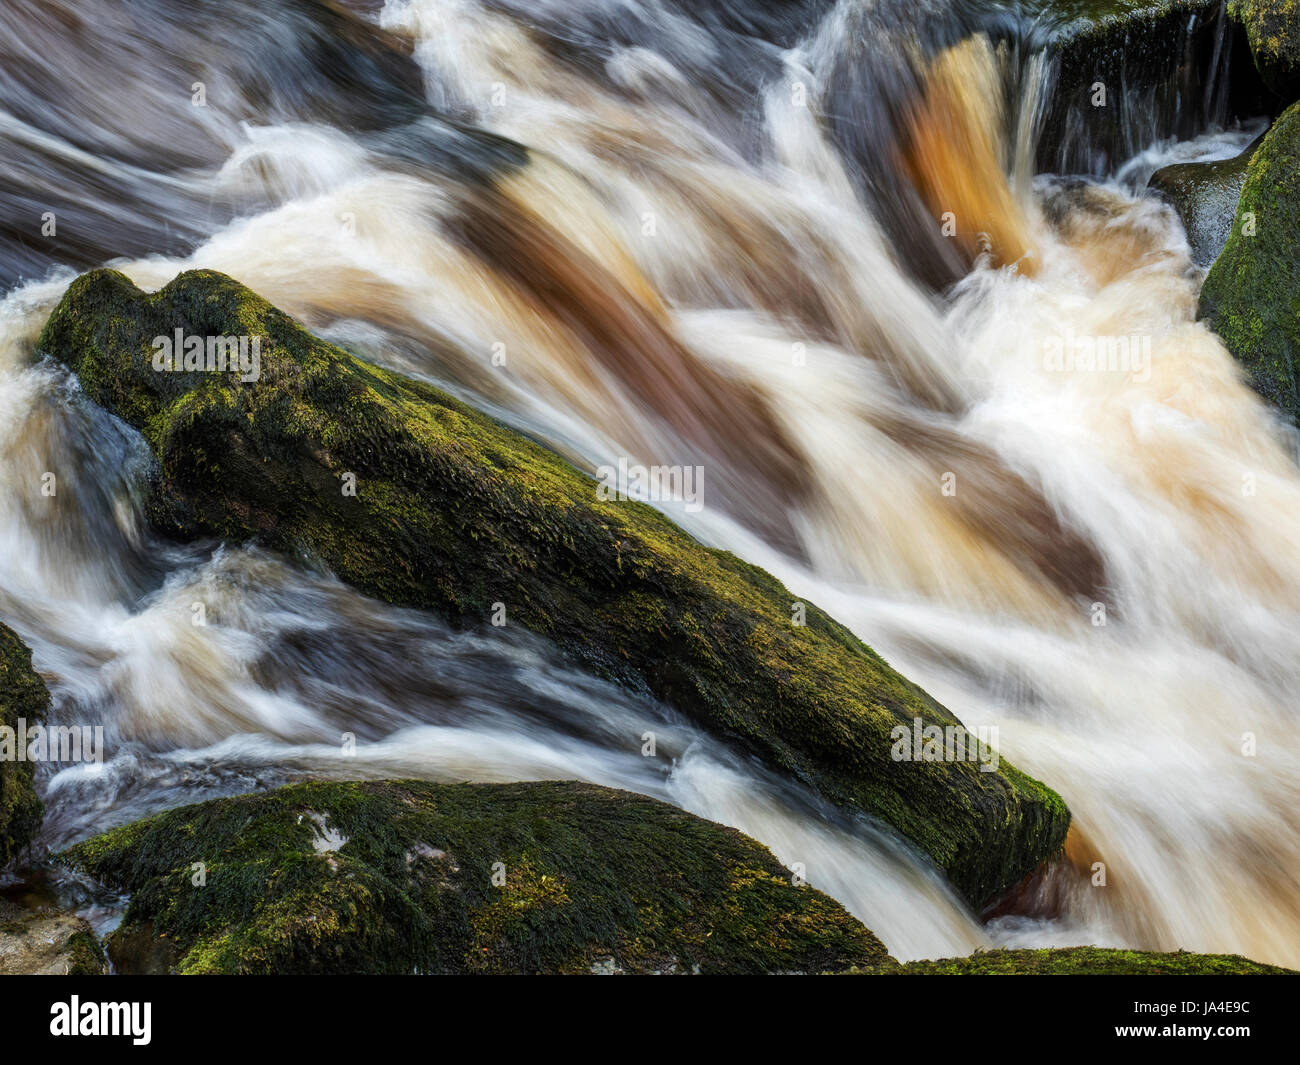 Bolton Abbey North Yorkshire England - Stock Image